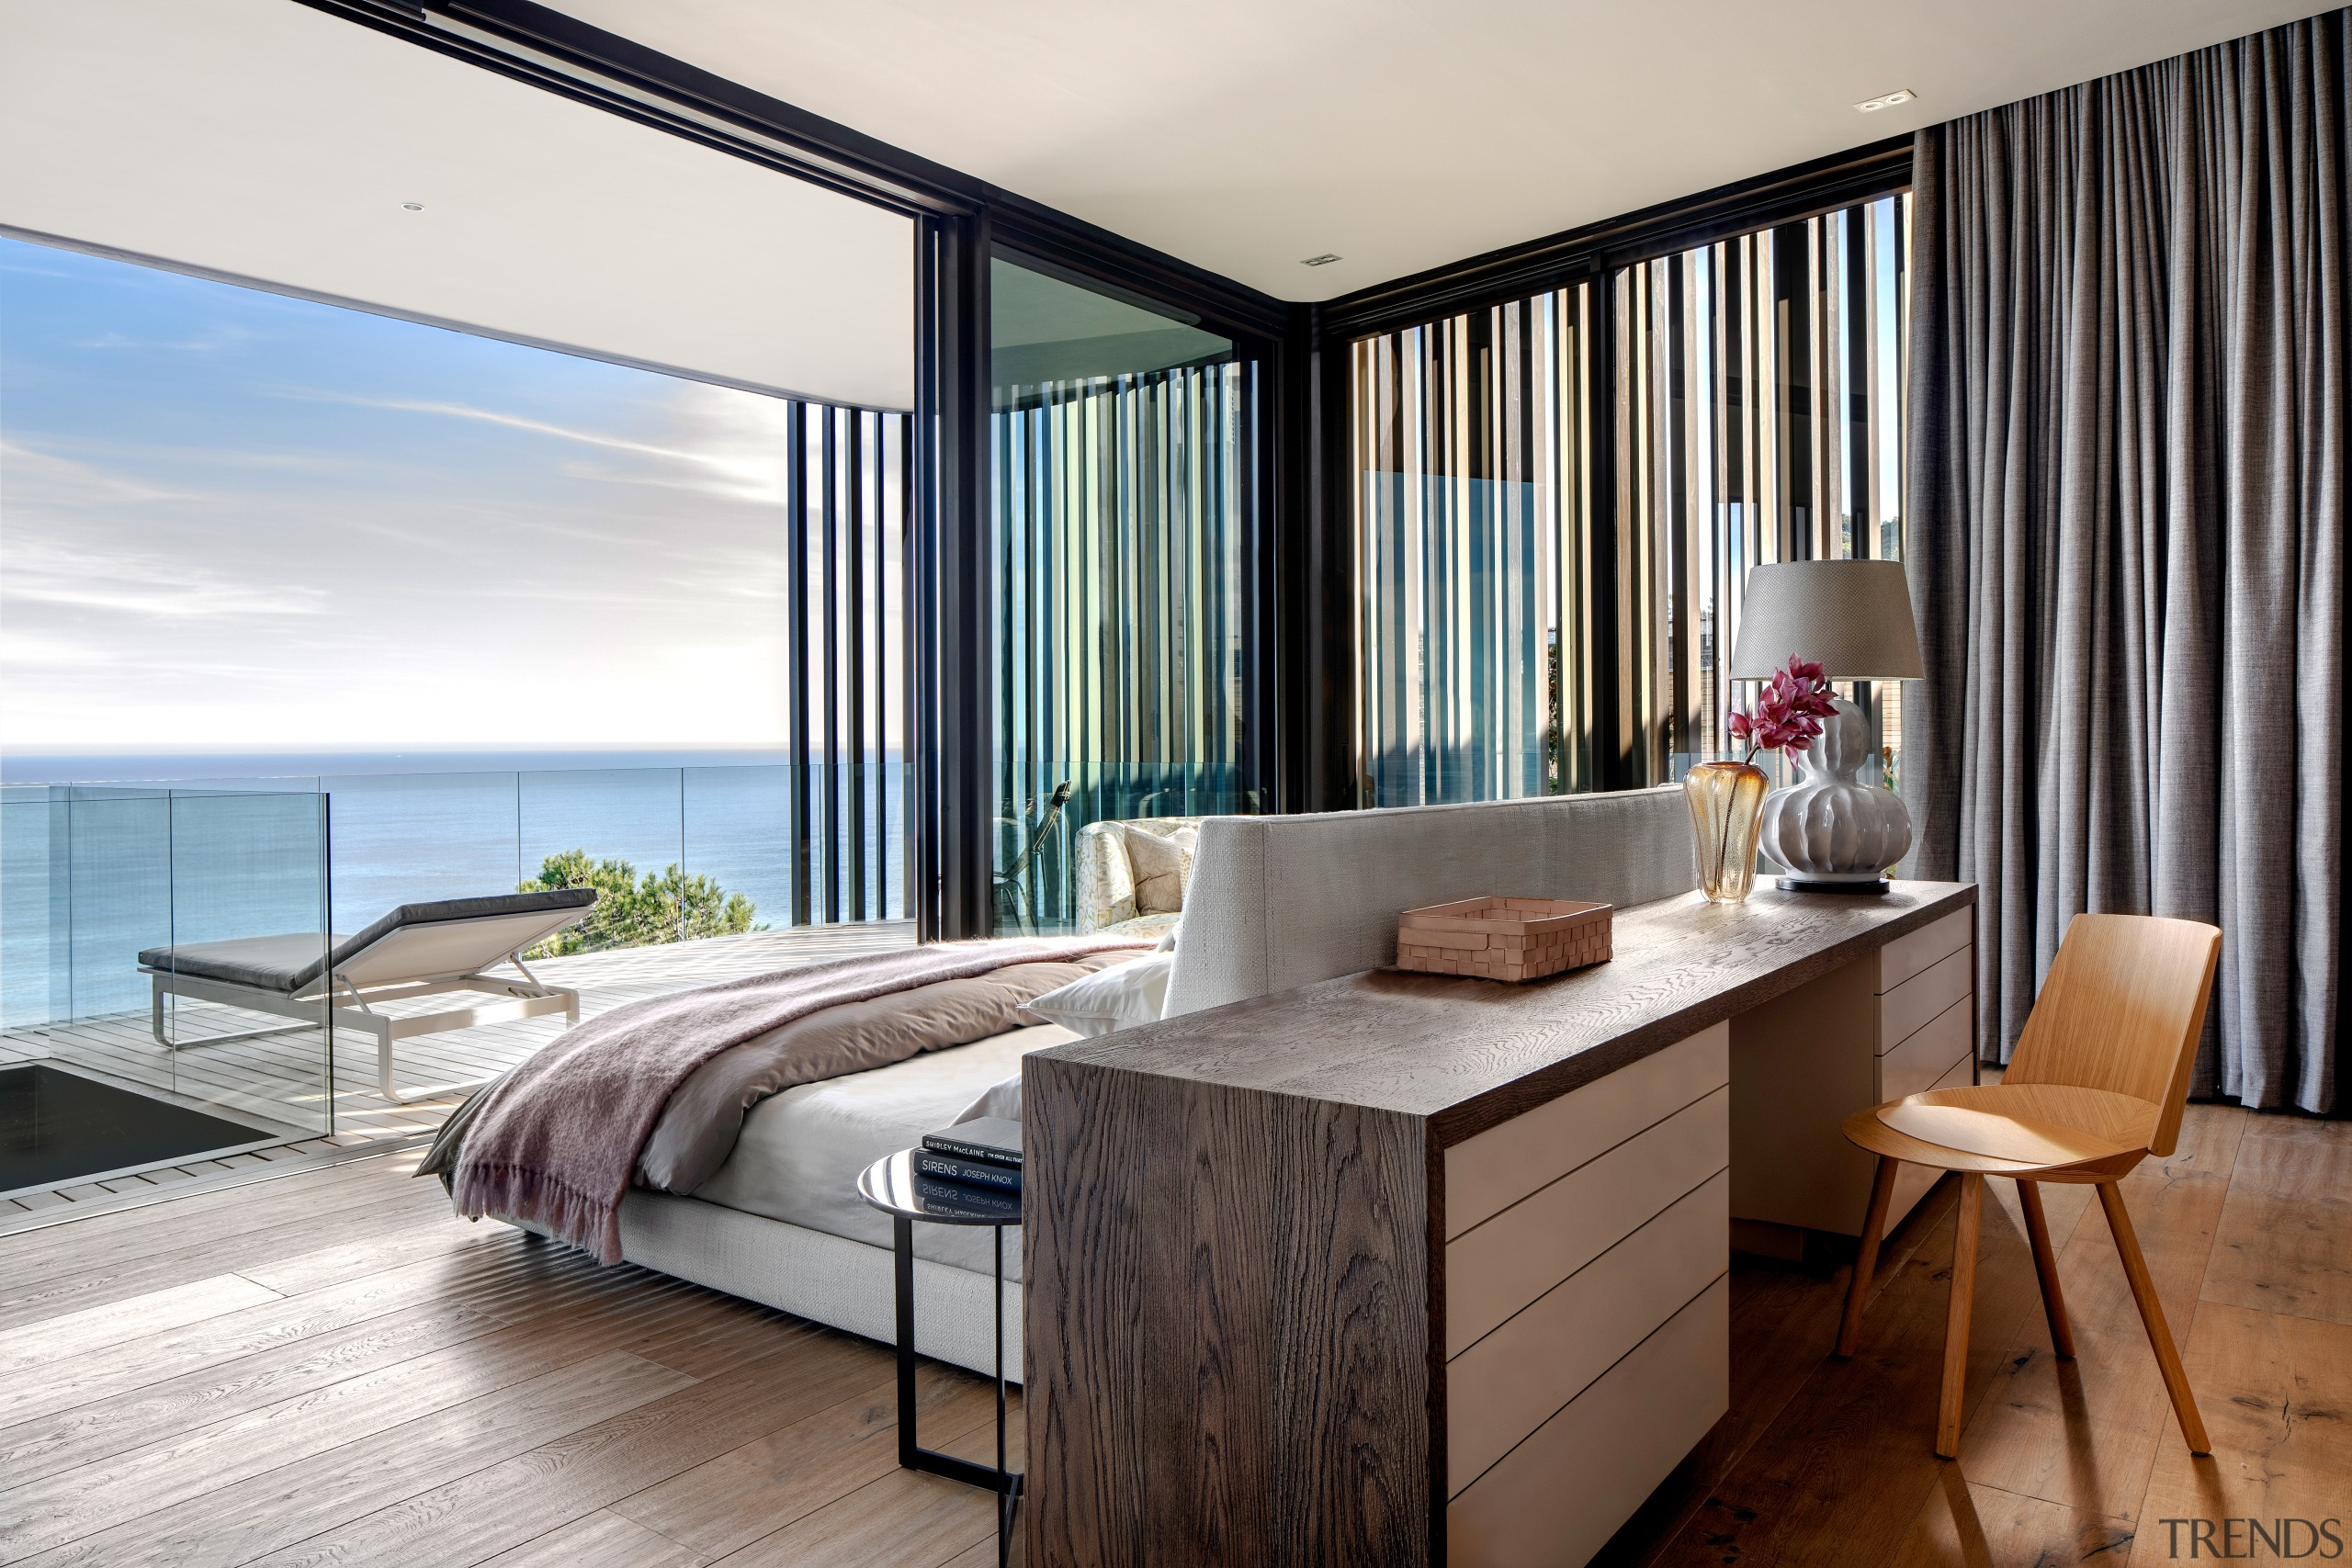 Everything in this bedroom is orientated towards the apartment, architecture, bedroom, building, ceiling, curtain, floor, furniture, home, house, interior design, living room, penthouse apartment, property, real estate, room, suite, table, wall, white